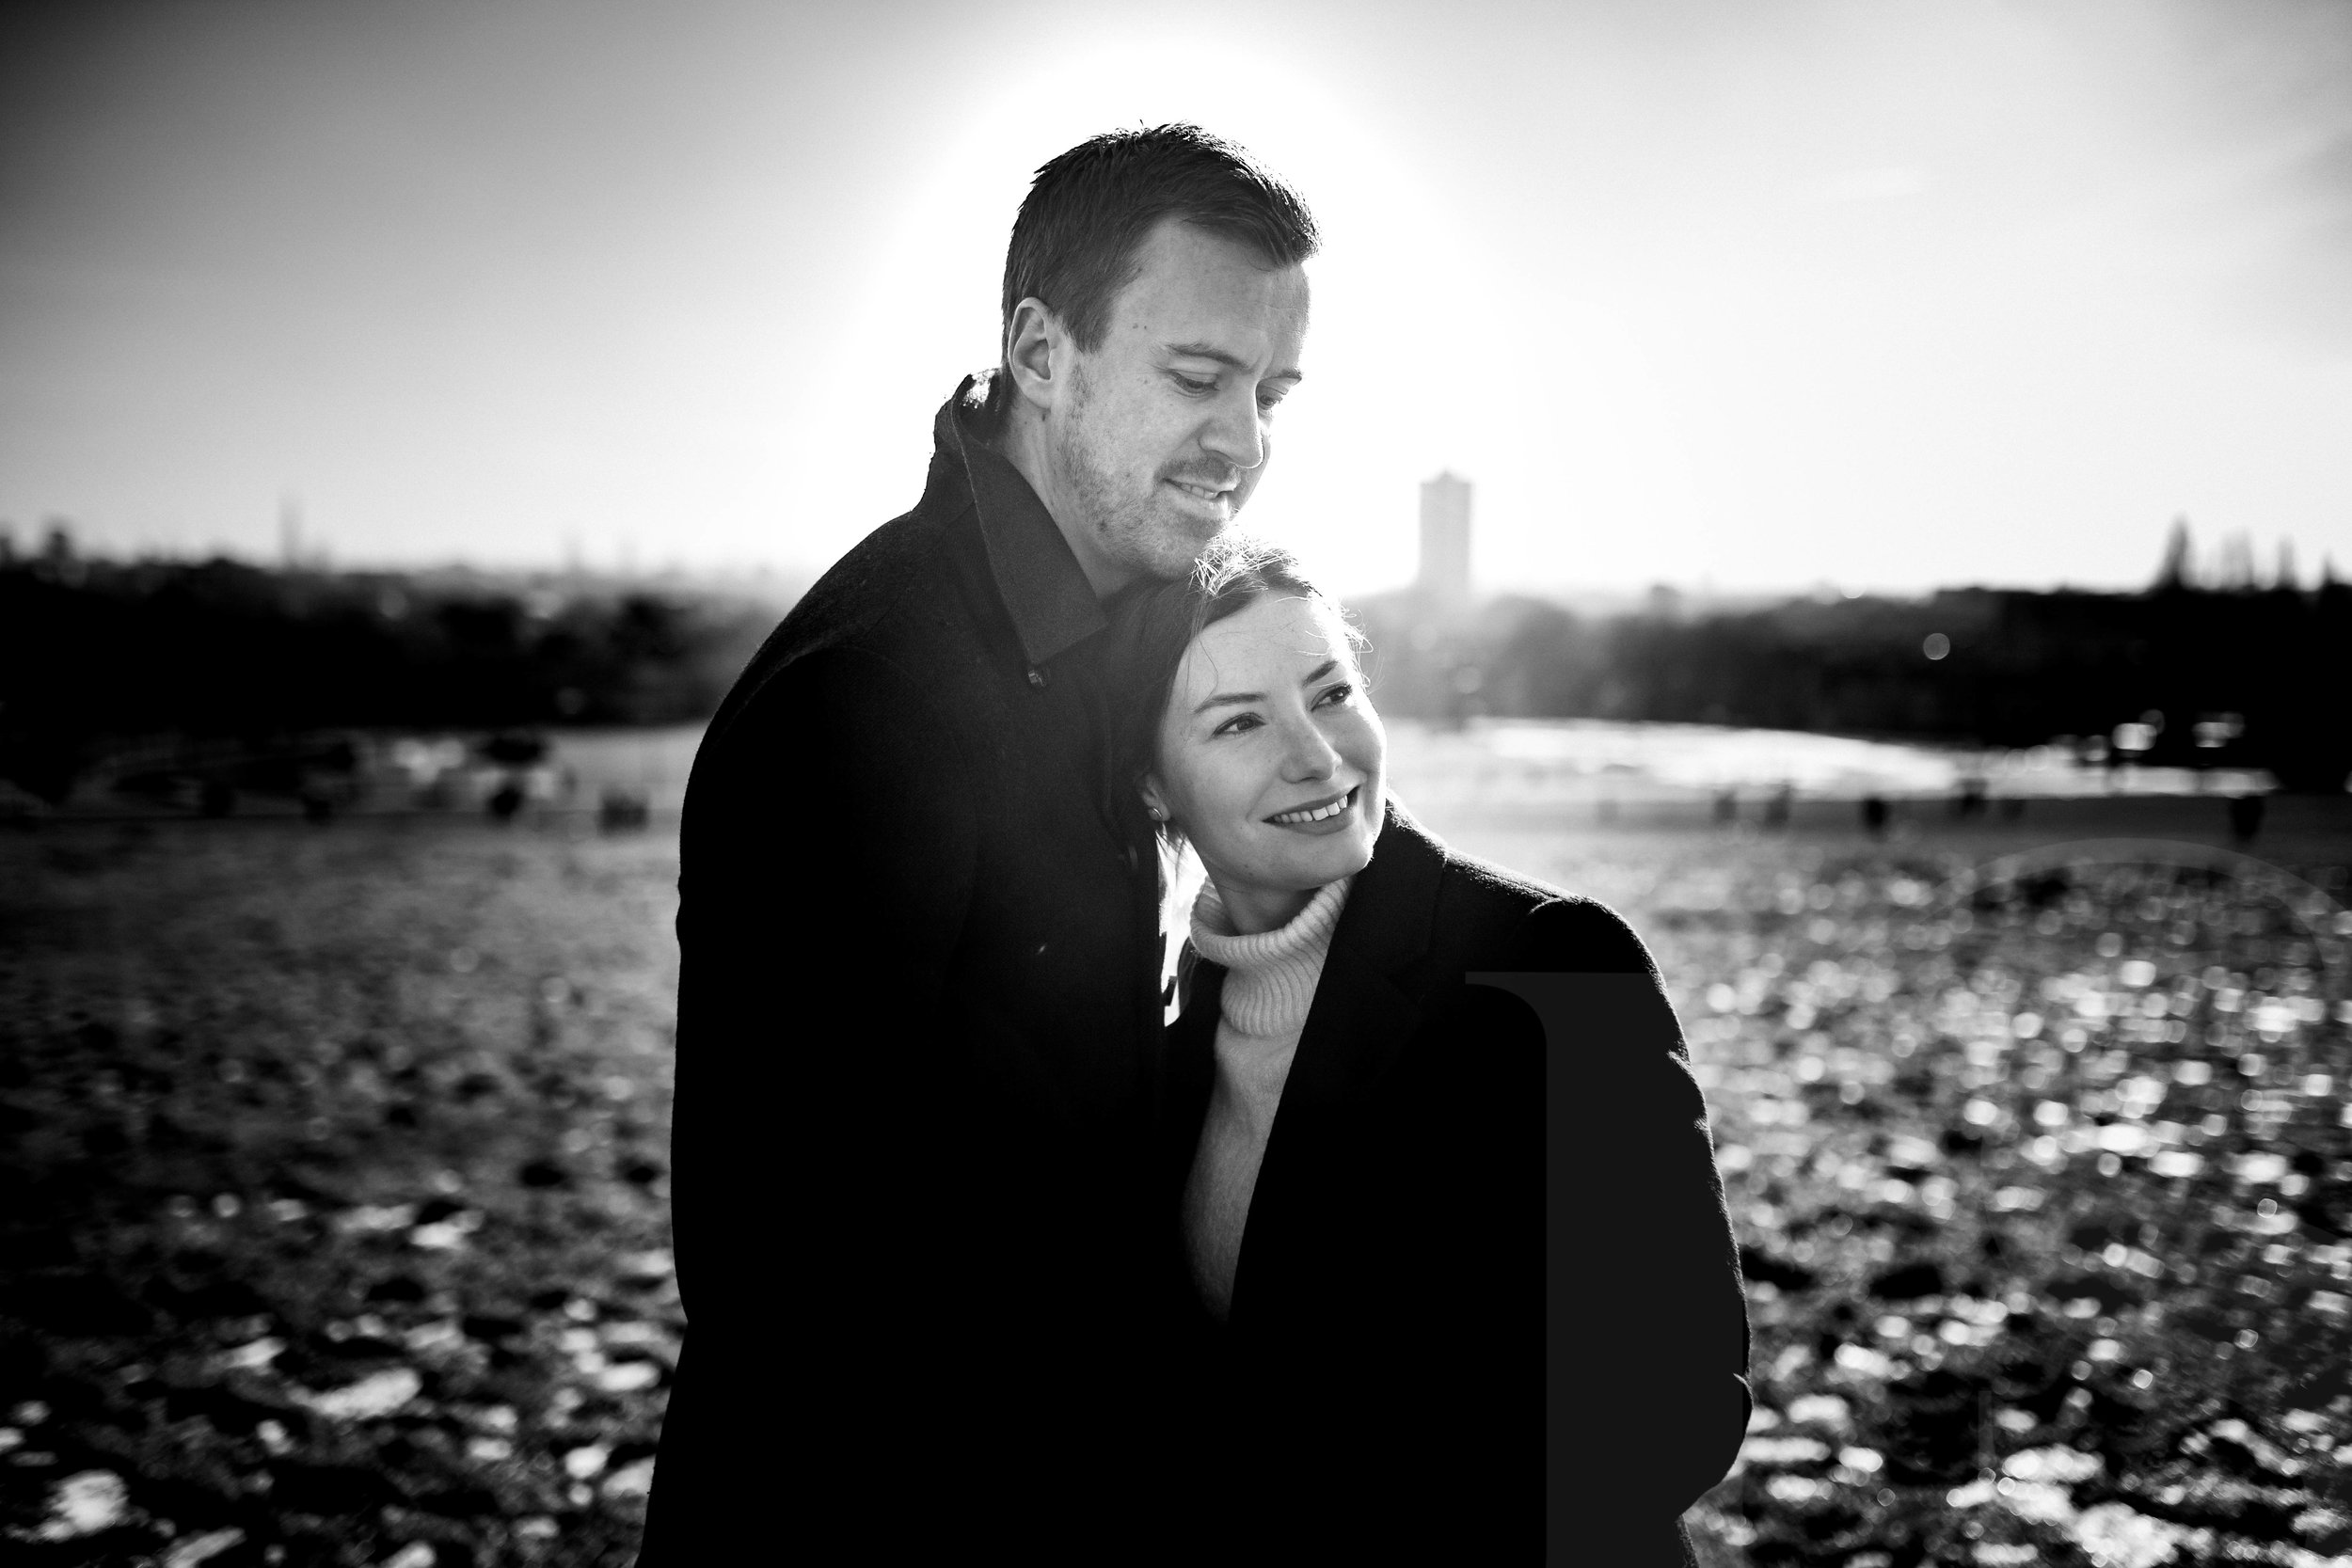 hampstead-heath-engagement-photography-17.jpg